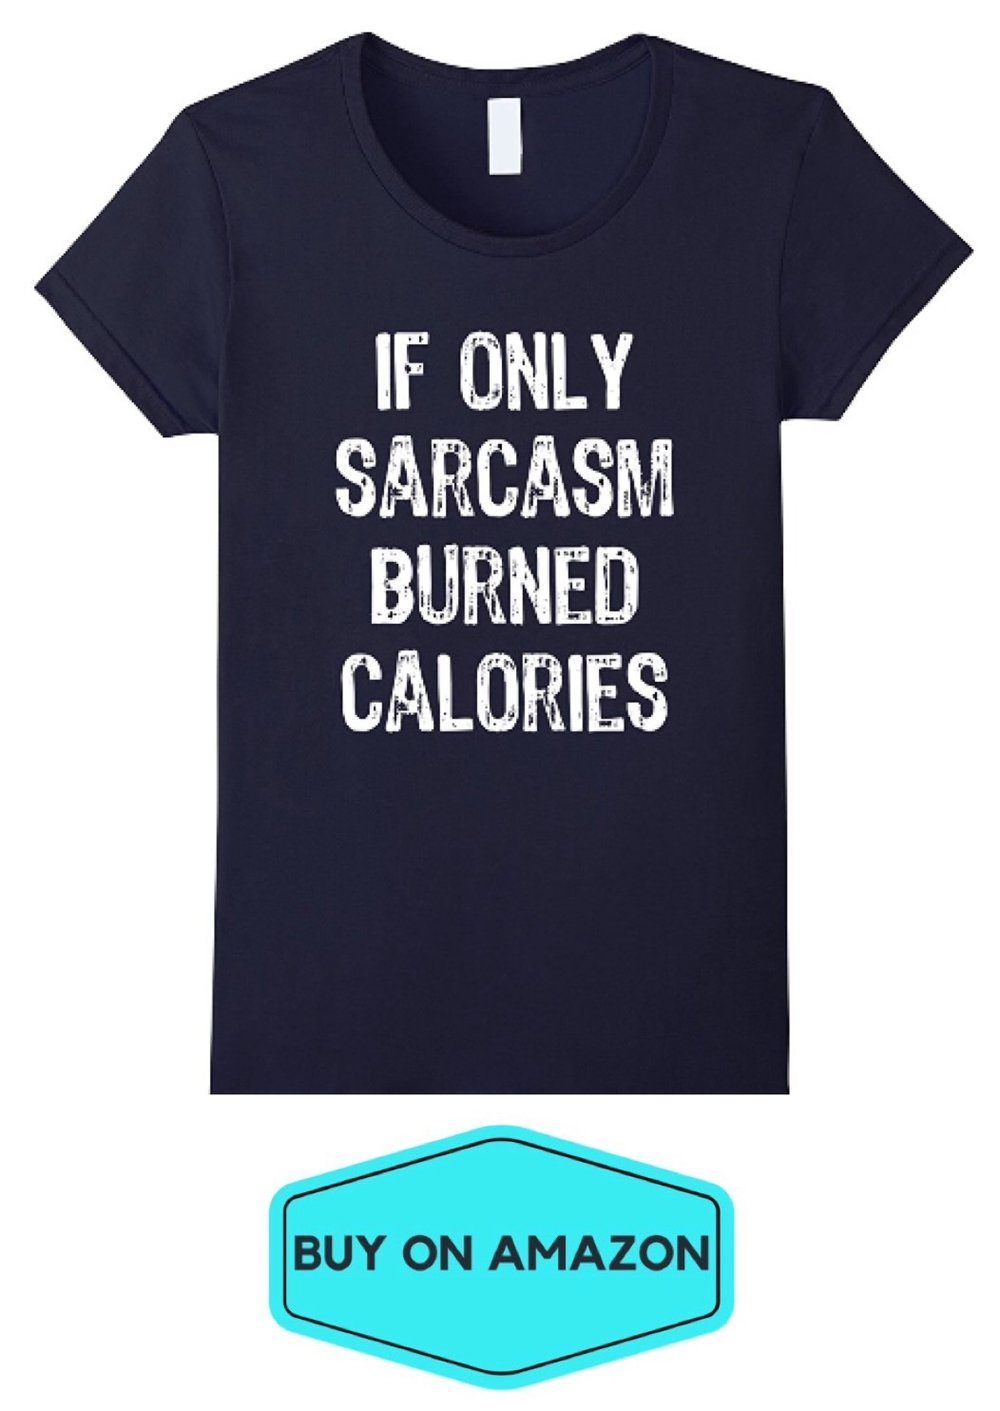 If Only Sarcasm Burned Calories Tee